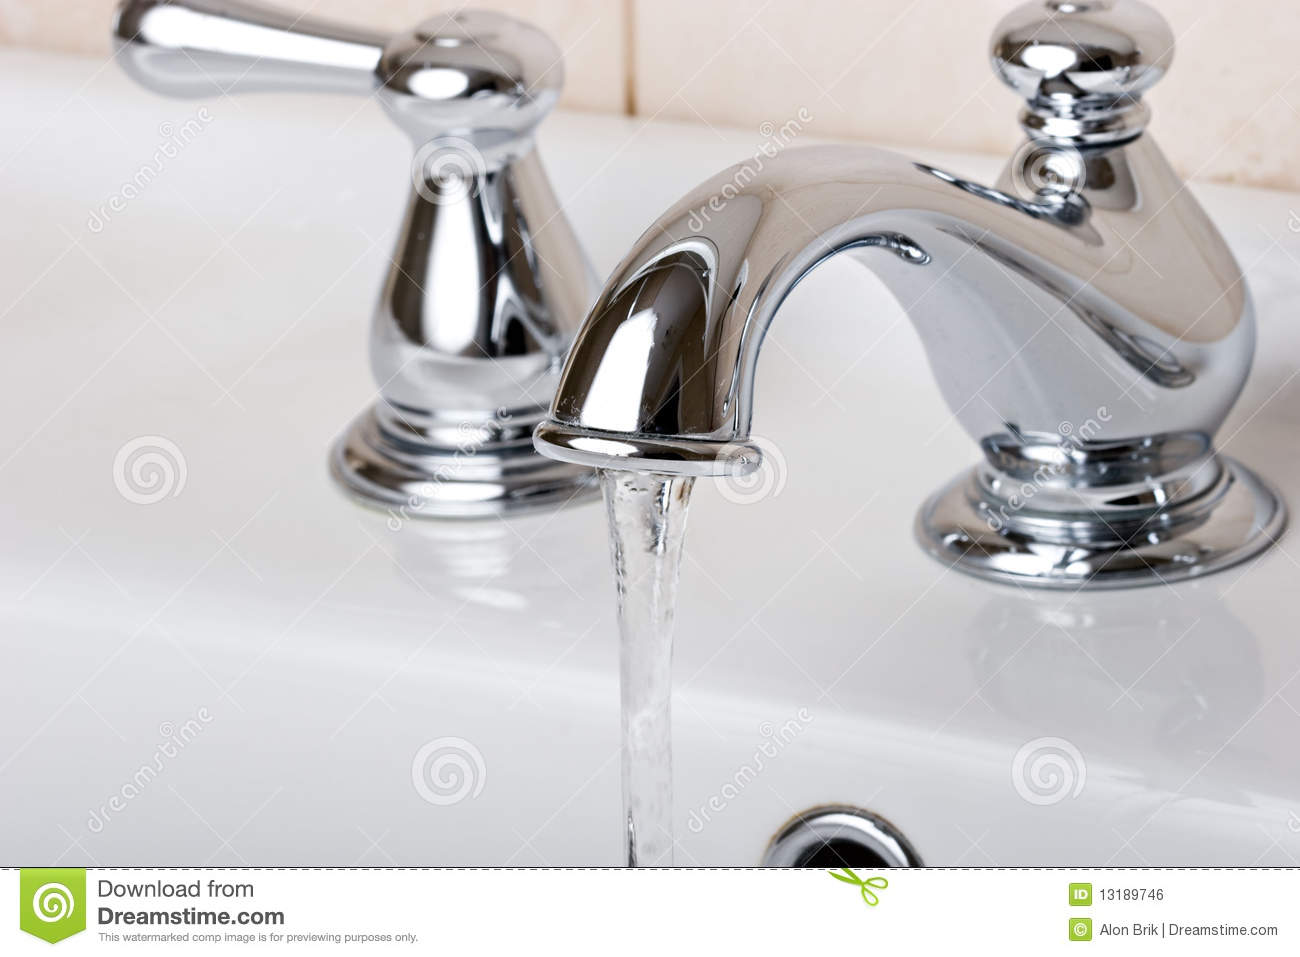 Silver Chrome Bathroom Tap Faucets Running Water Stock Photo - Image ...